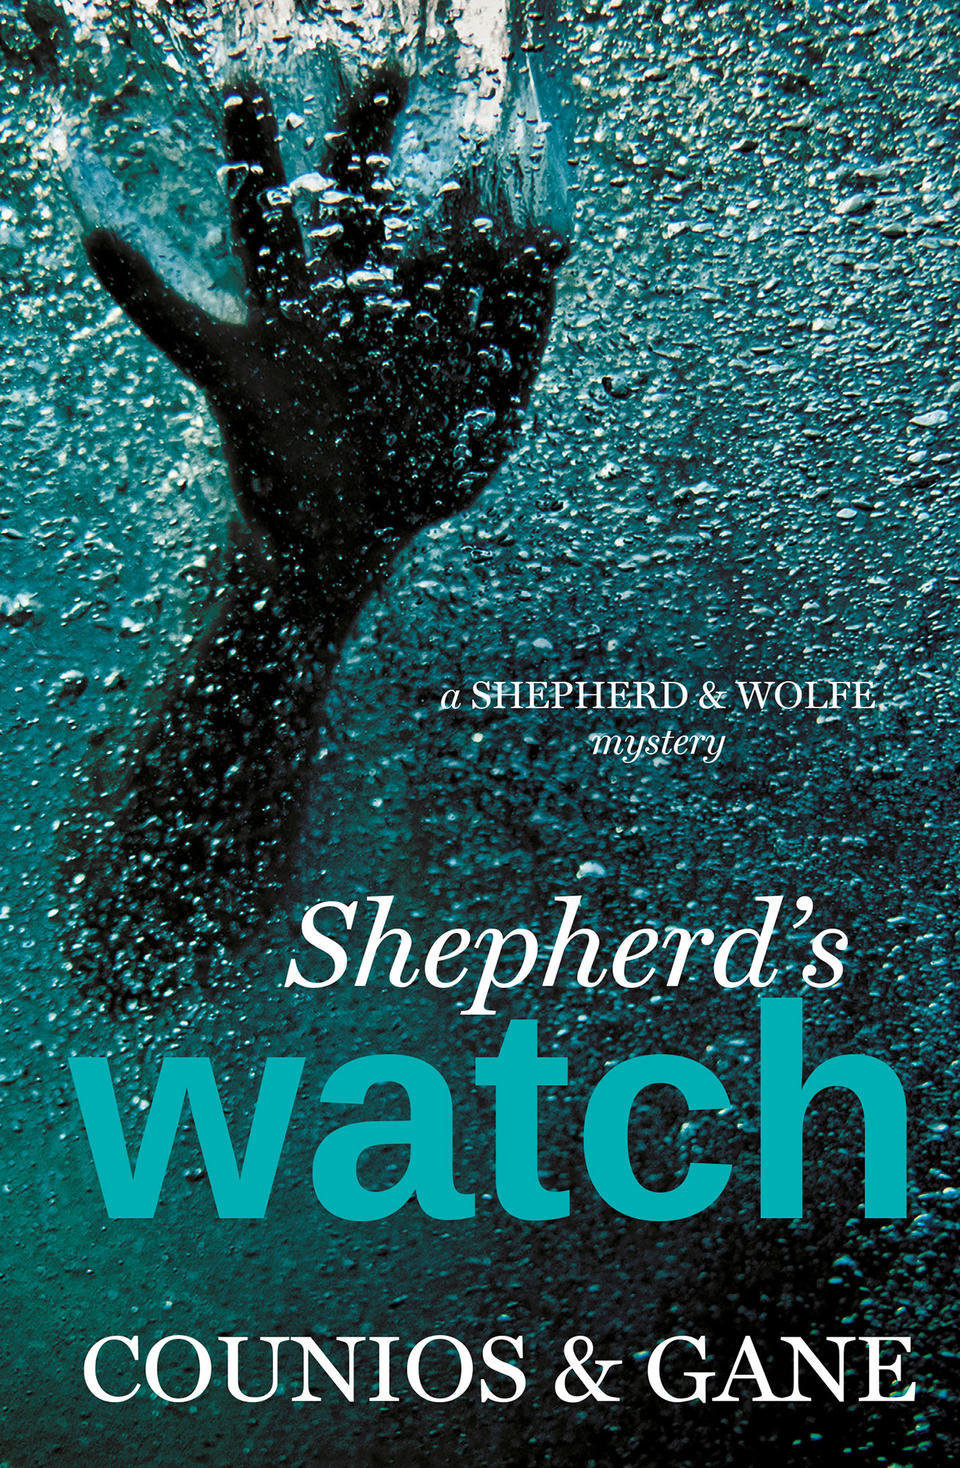 Shepherd's Watch: A Shepherd & Wolfe Mystery